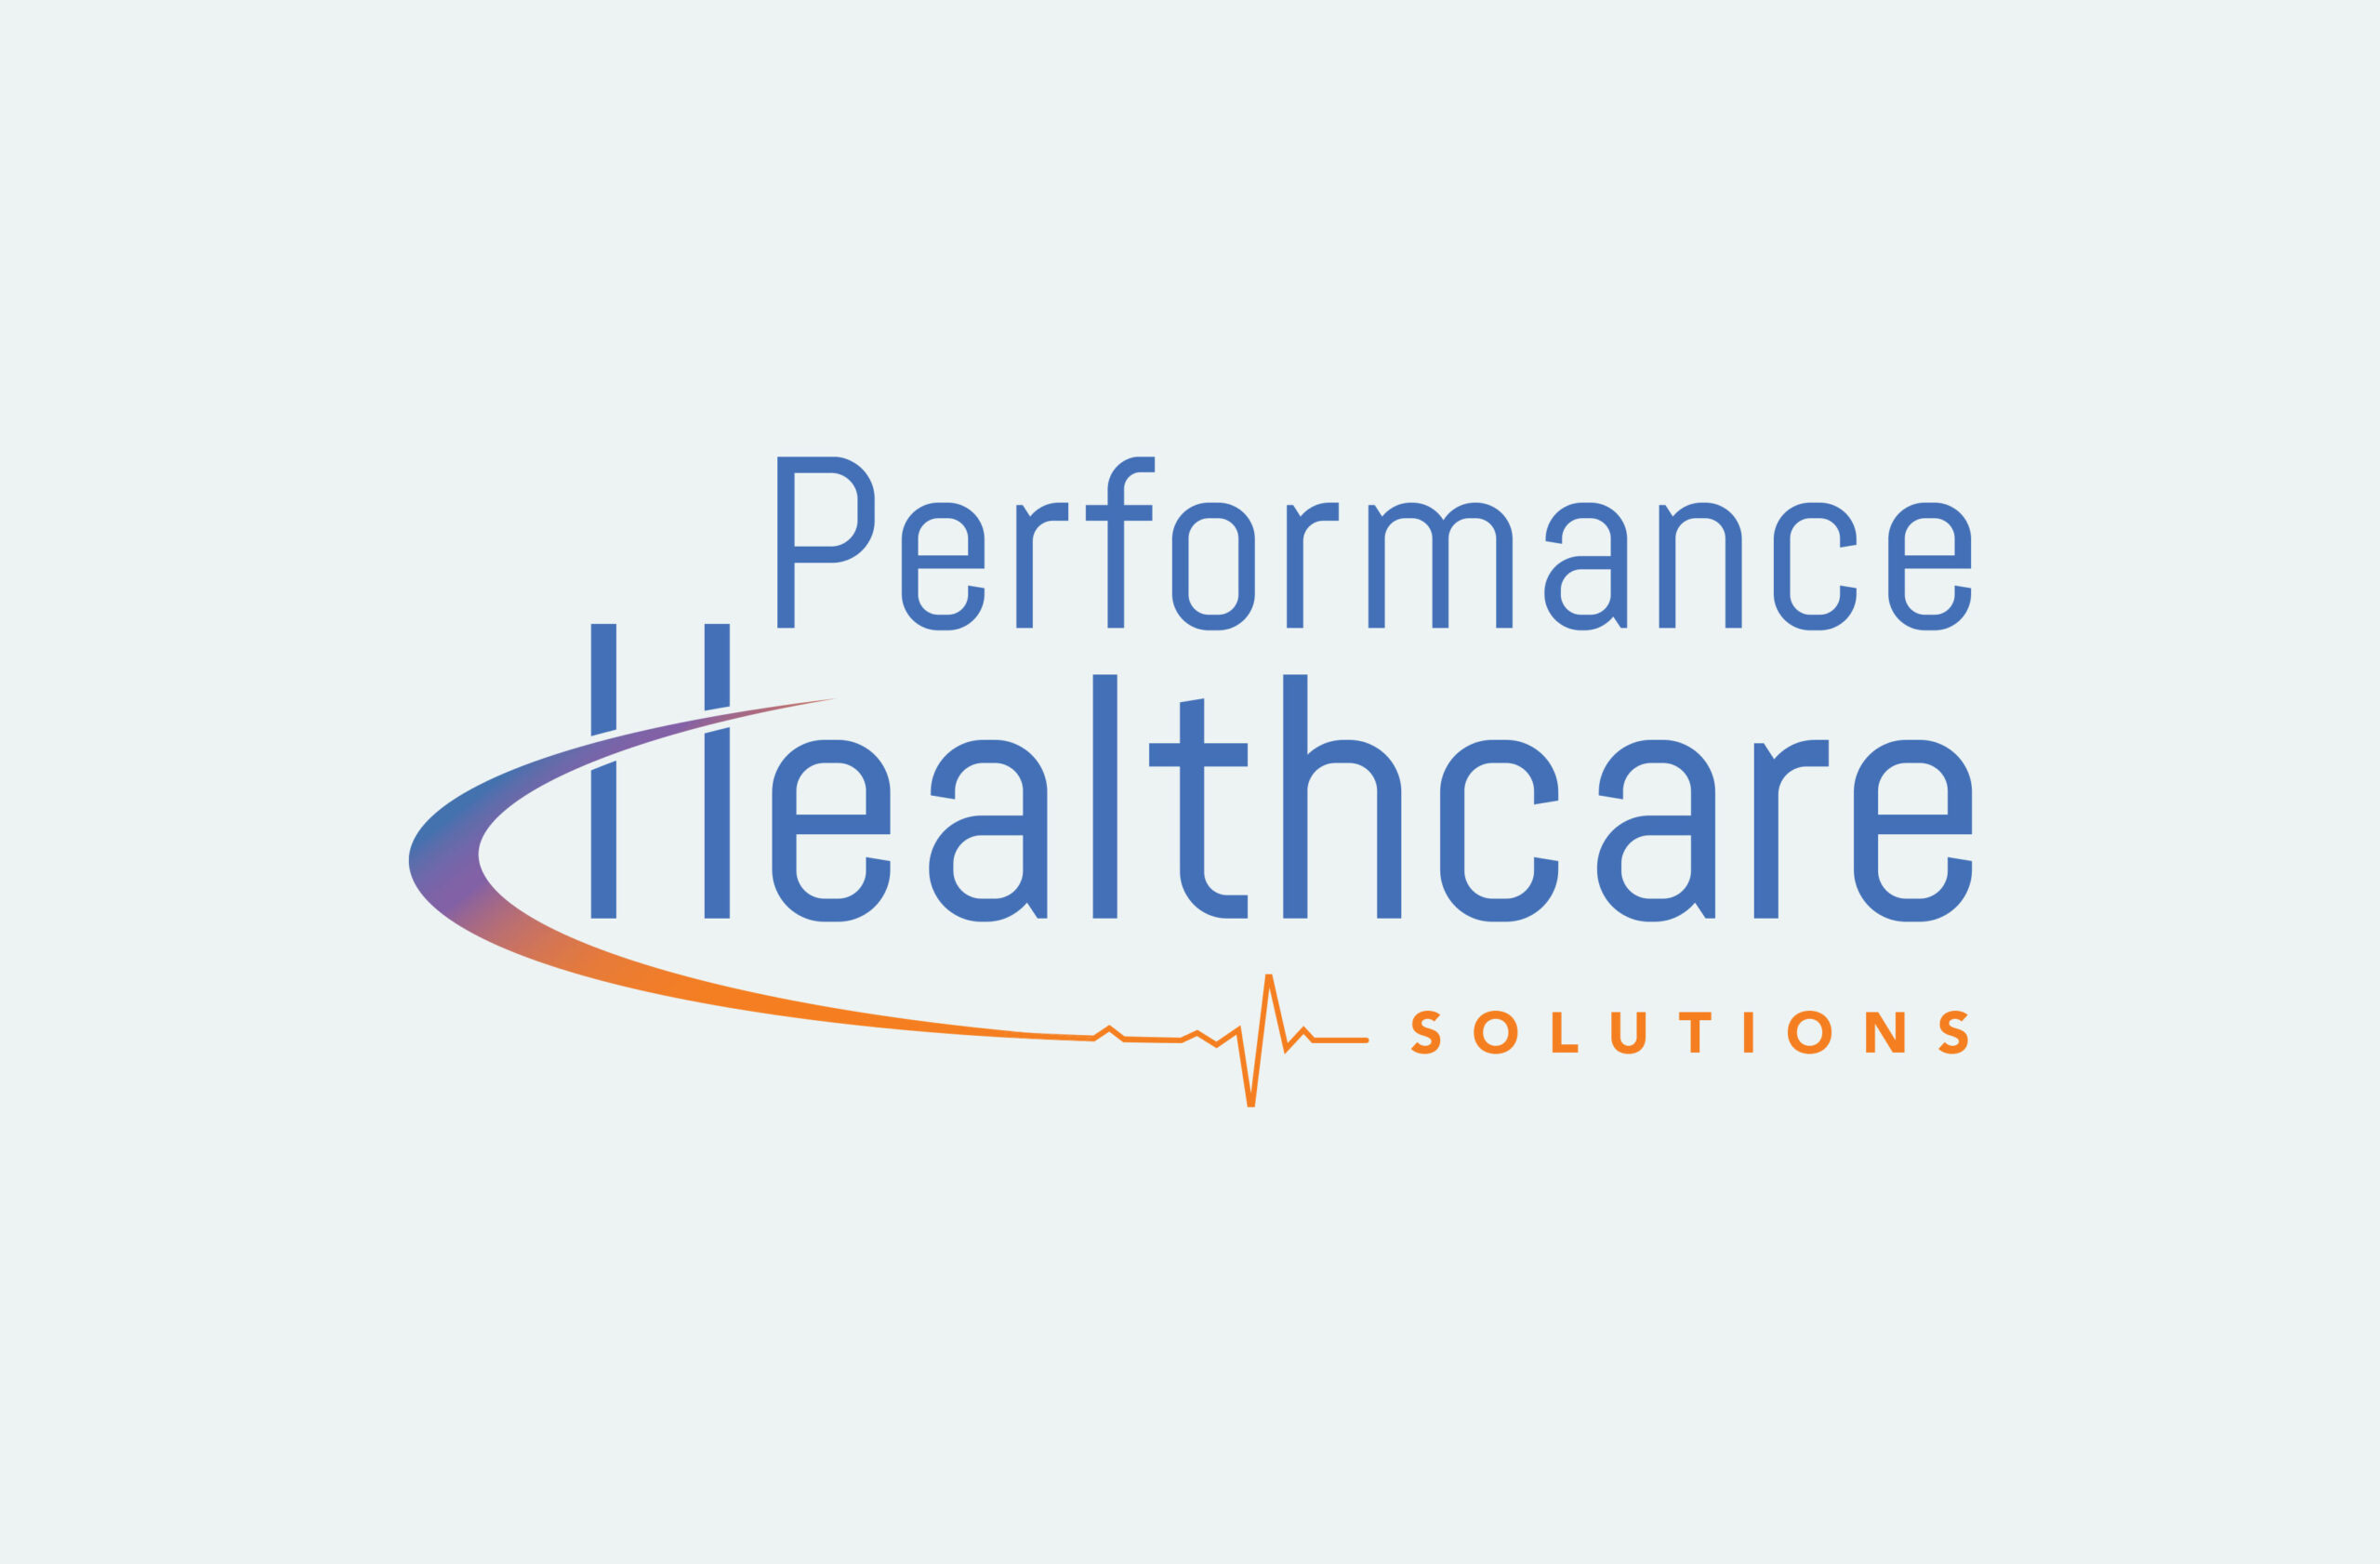 performance healthcare solutions